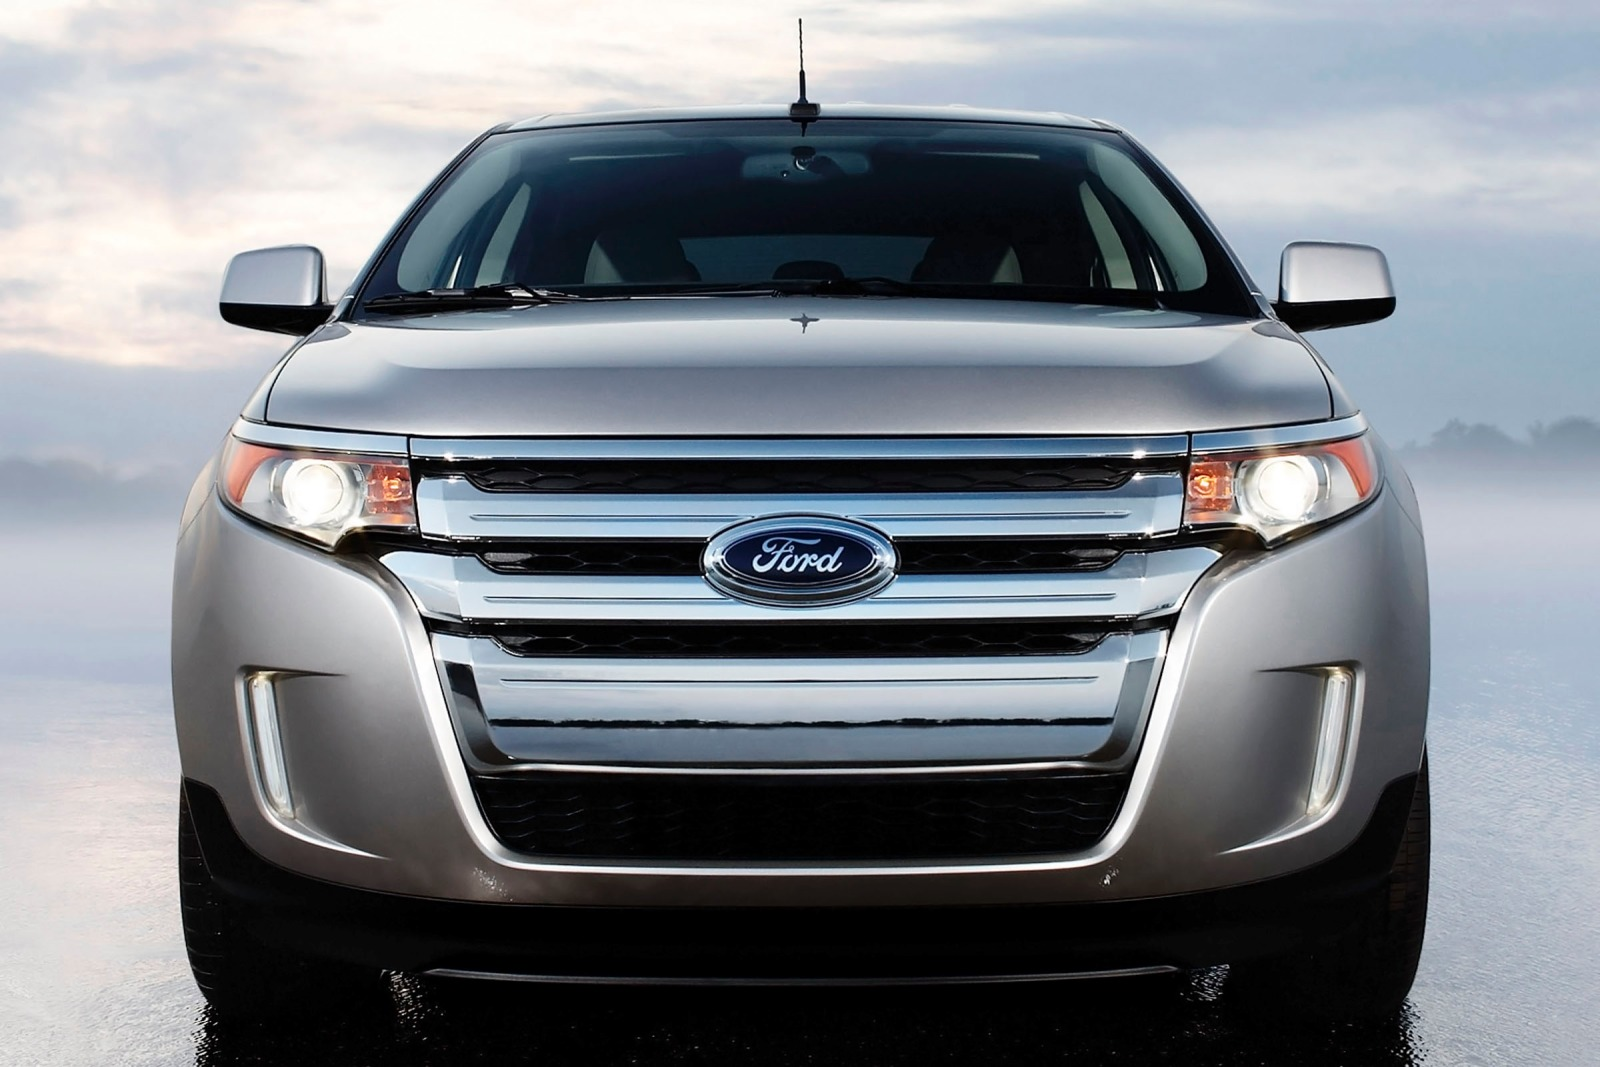 2013 Ford Edge 4dr SUV Re exterior #6